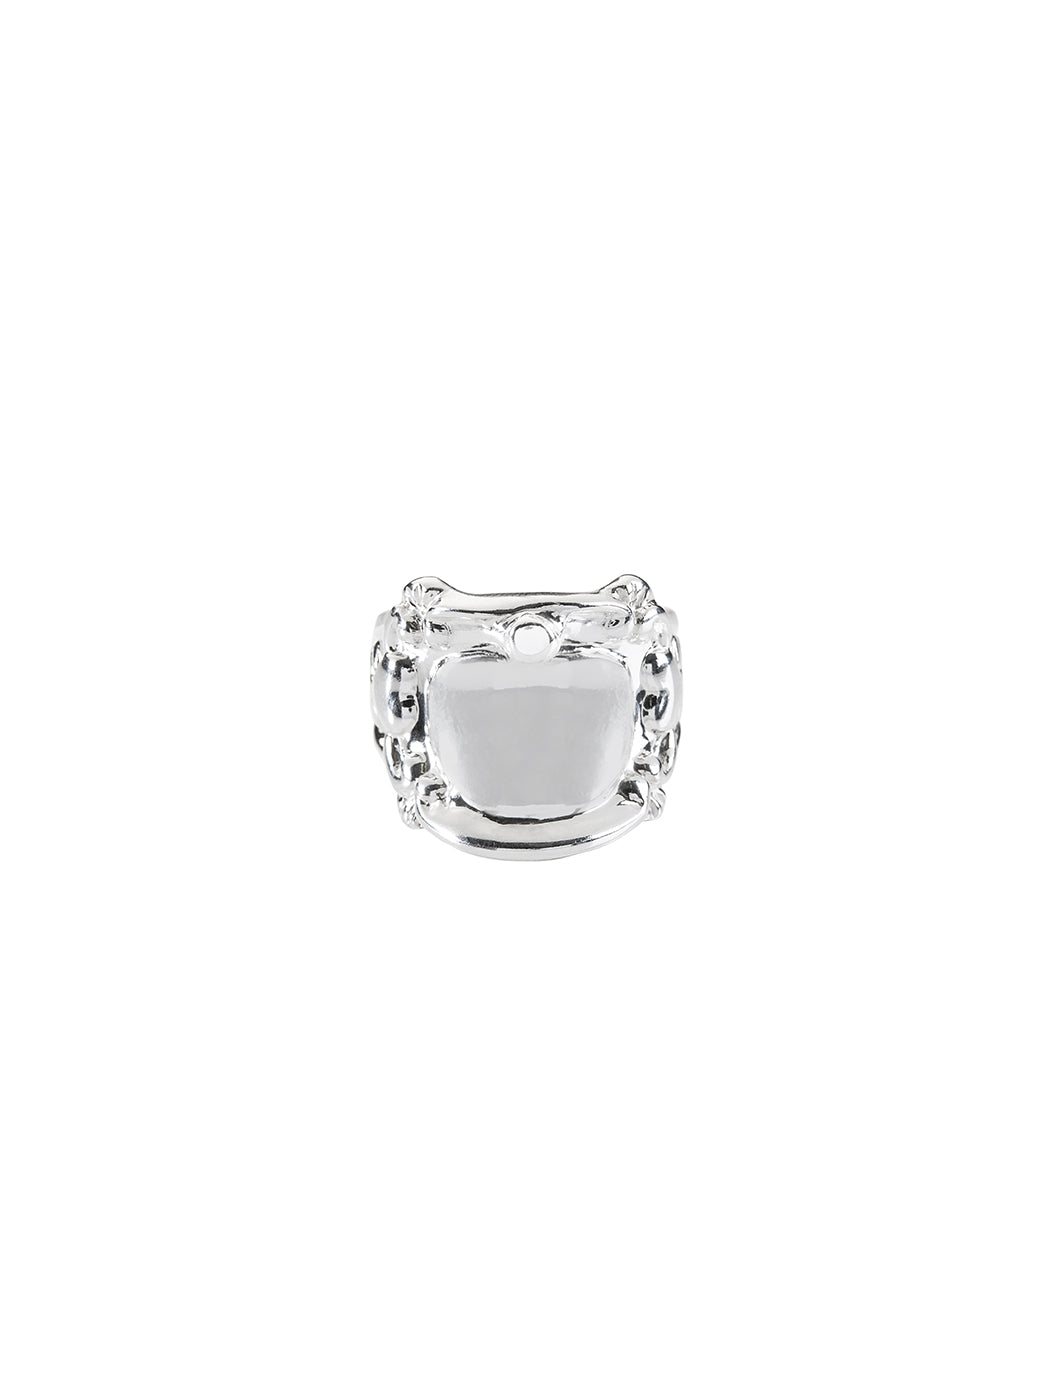 Fiorina Jewellery Saddle Ring